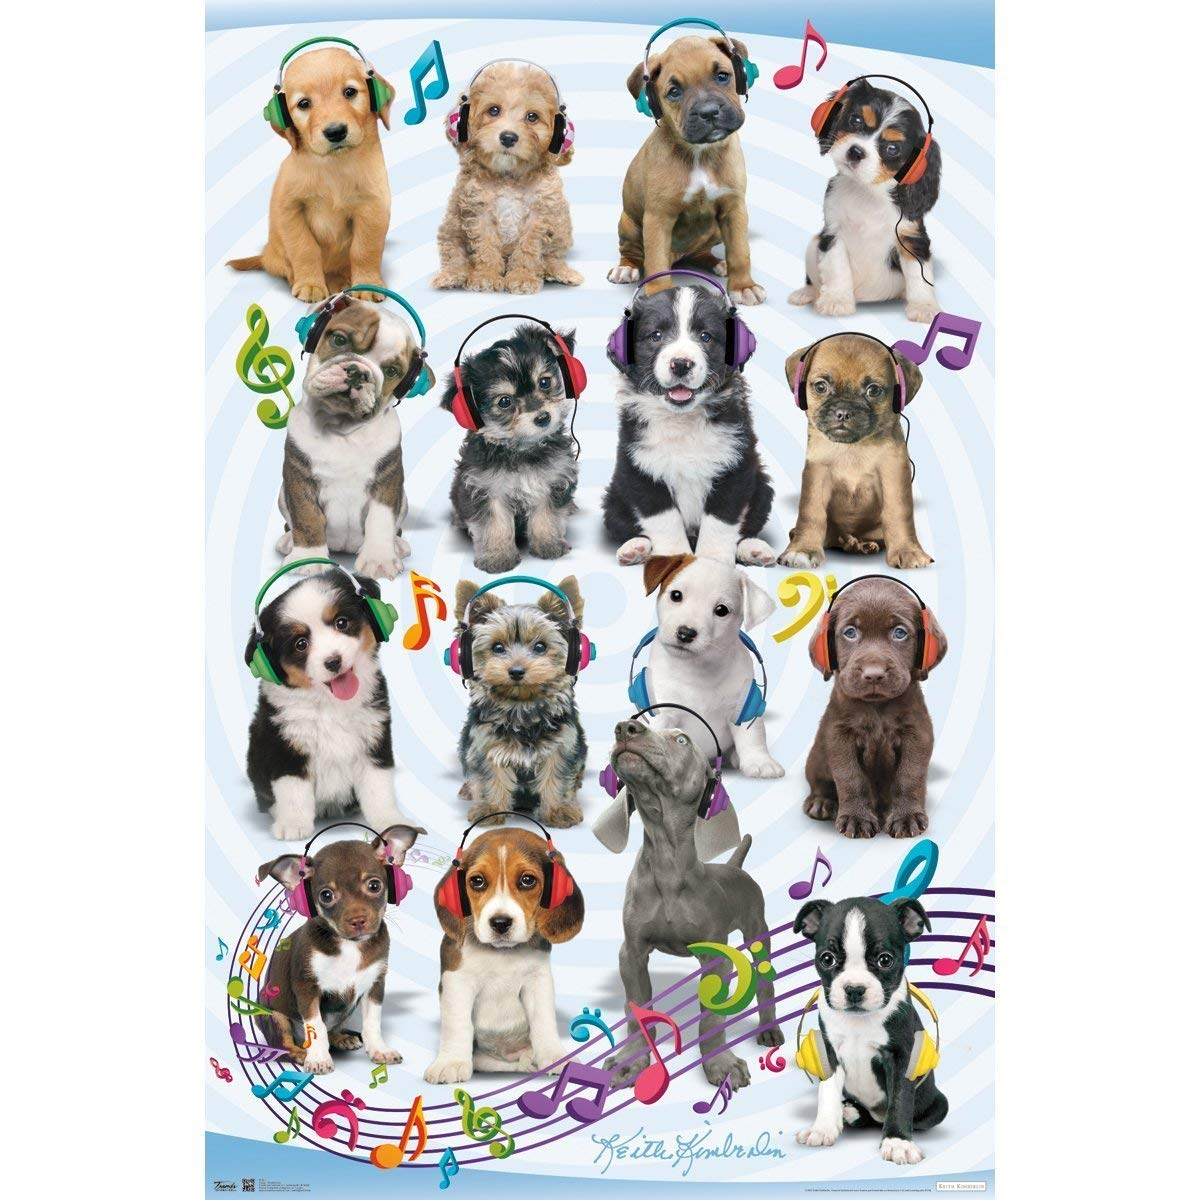 """60"""" x 80"""" Blanket Comfort Warmth Soft Plush Throw for Couch Dog Puppy Headphones"""